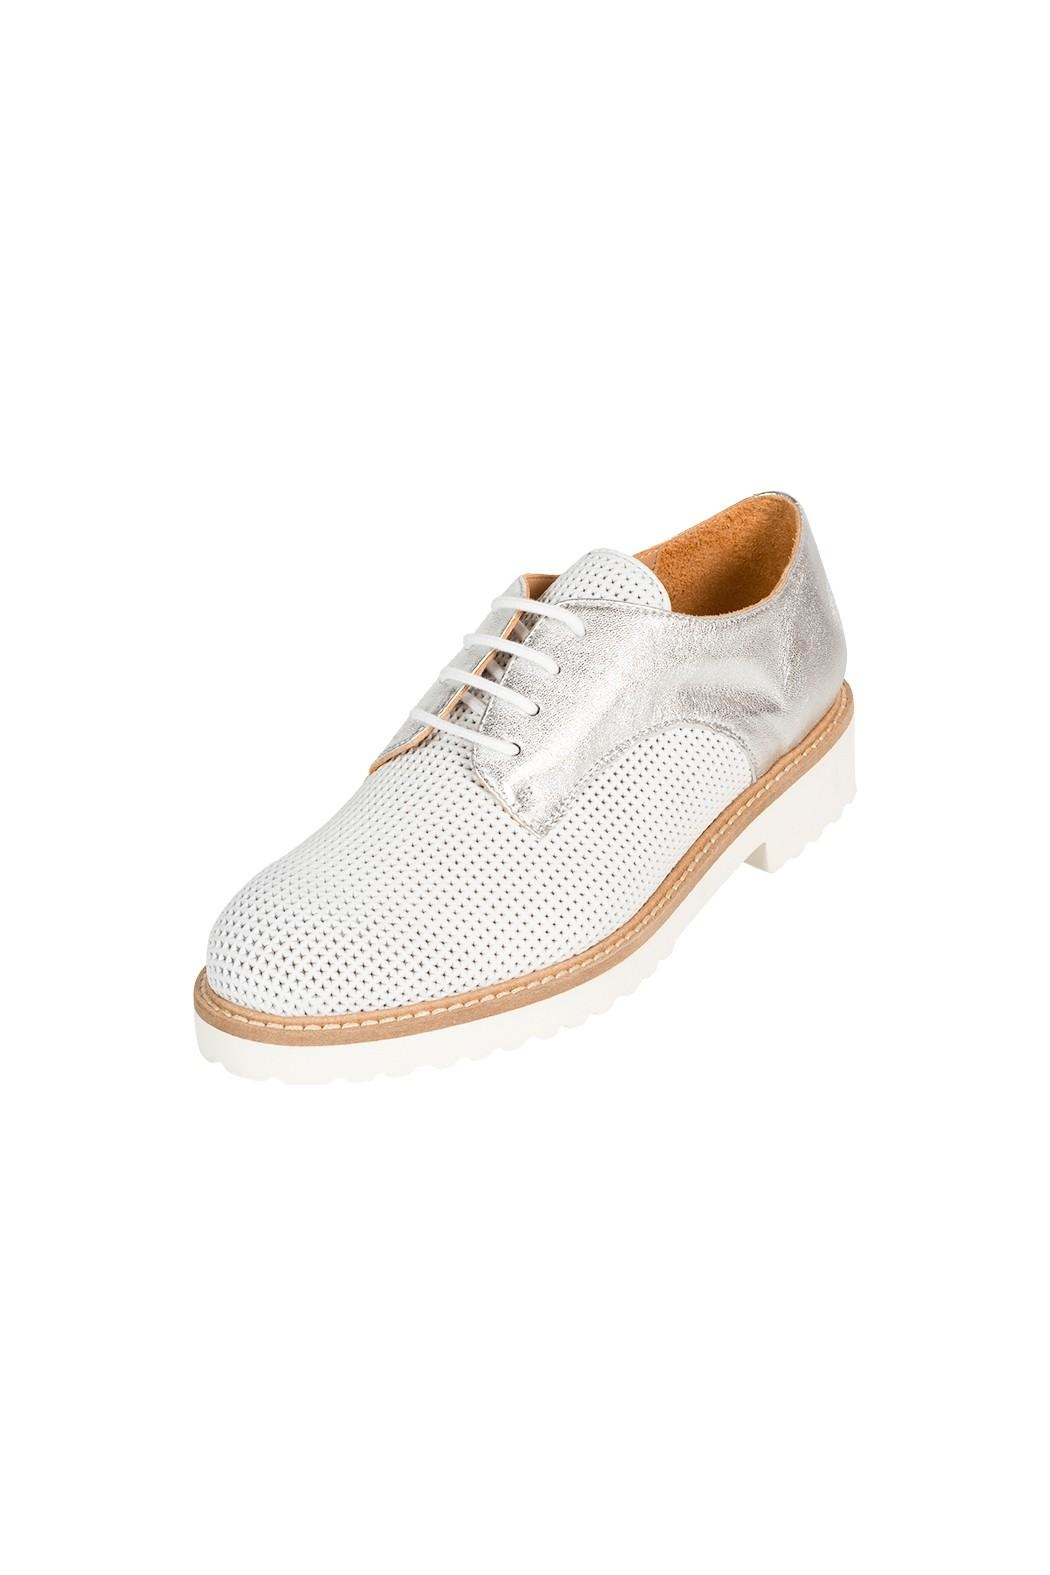 Pascucci White-Silver Leather Brogue - Front Full Image